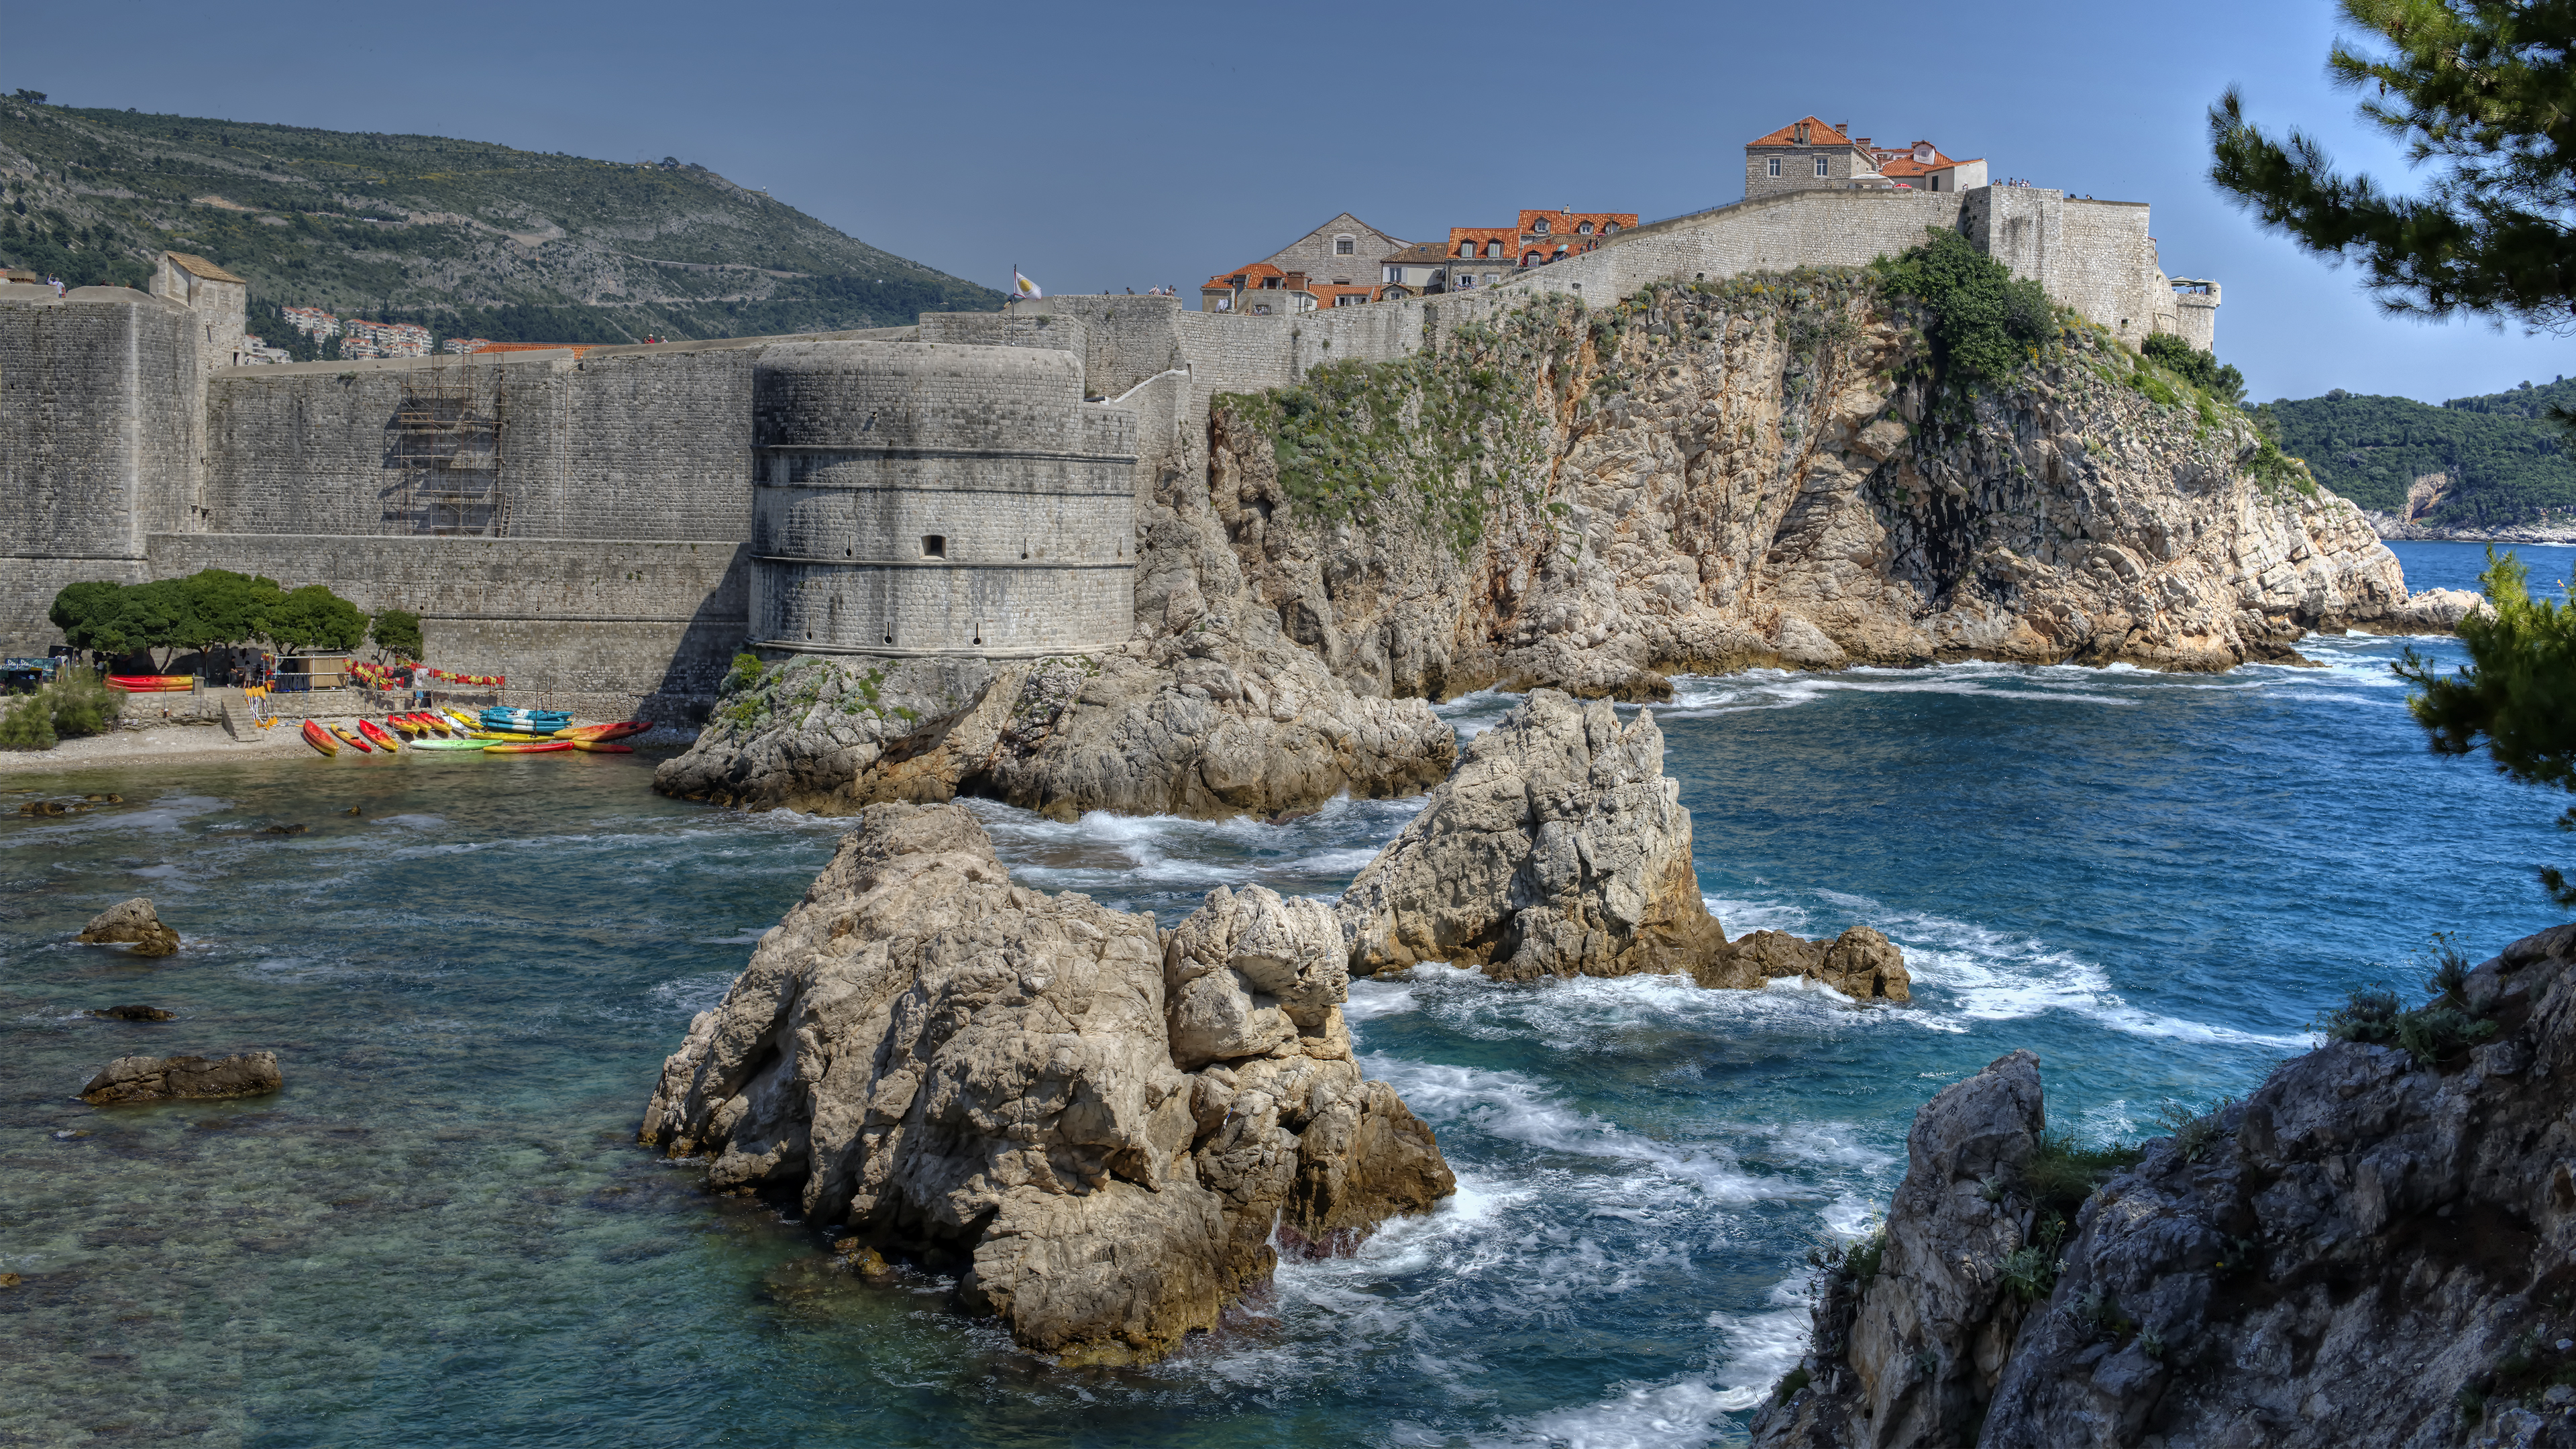 View of Dubrovnik from Fort Lovrijen